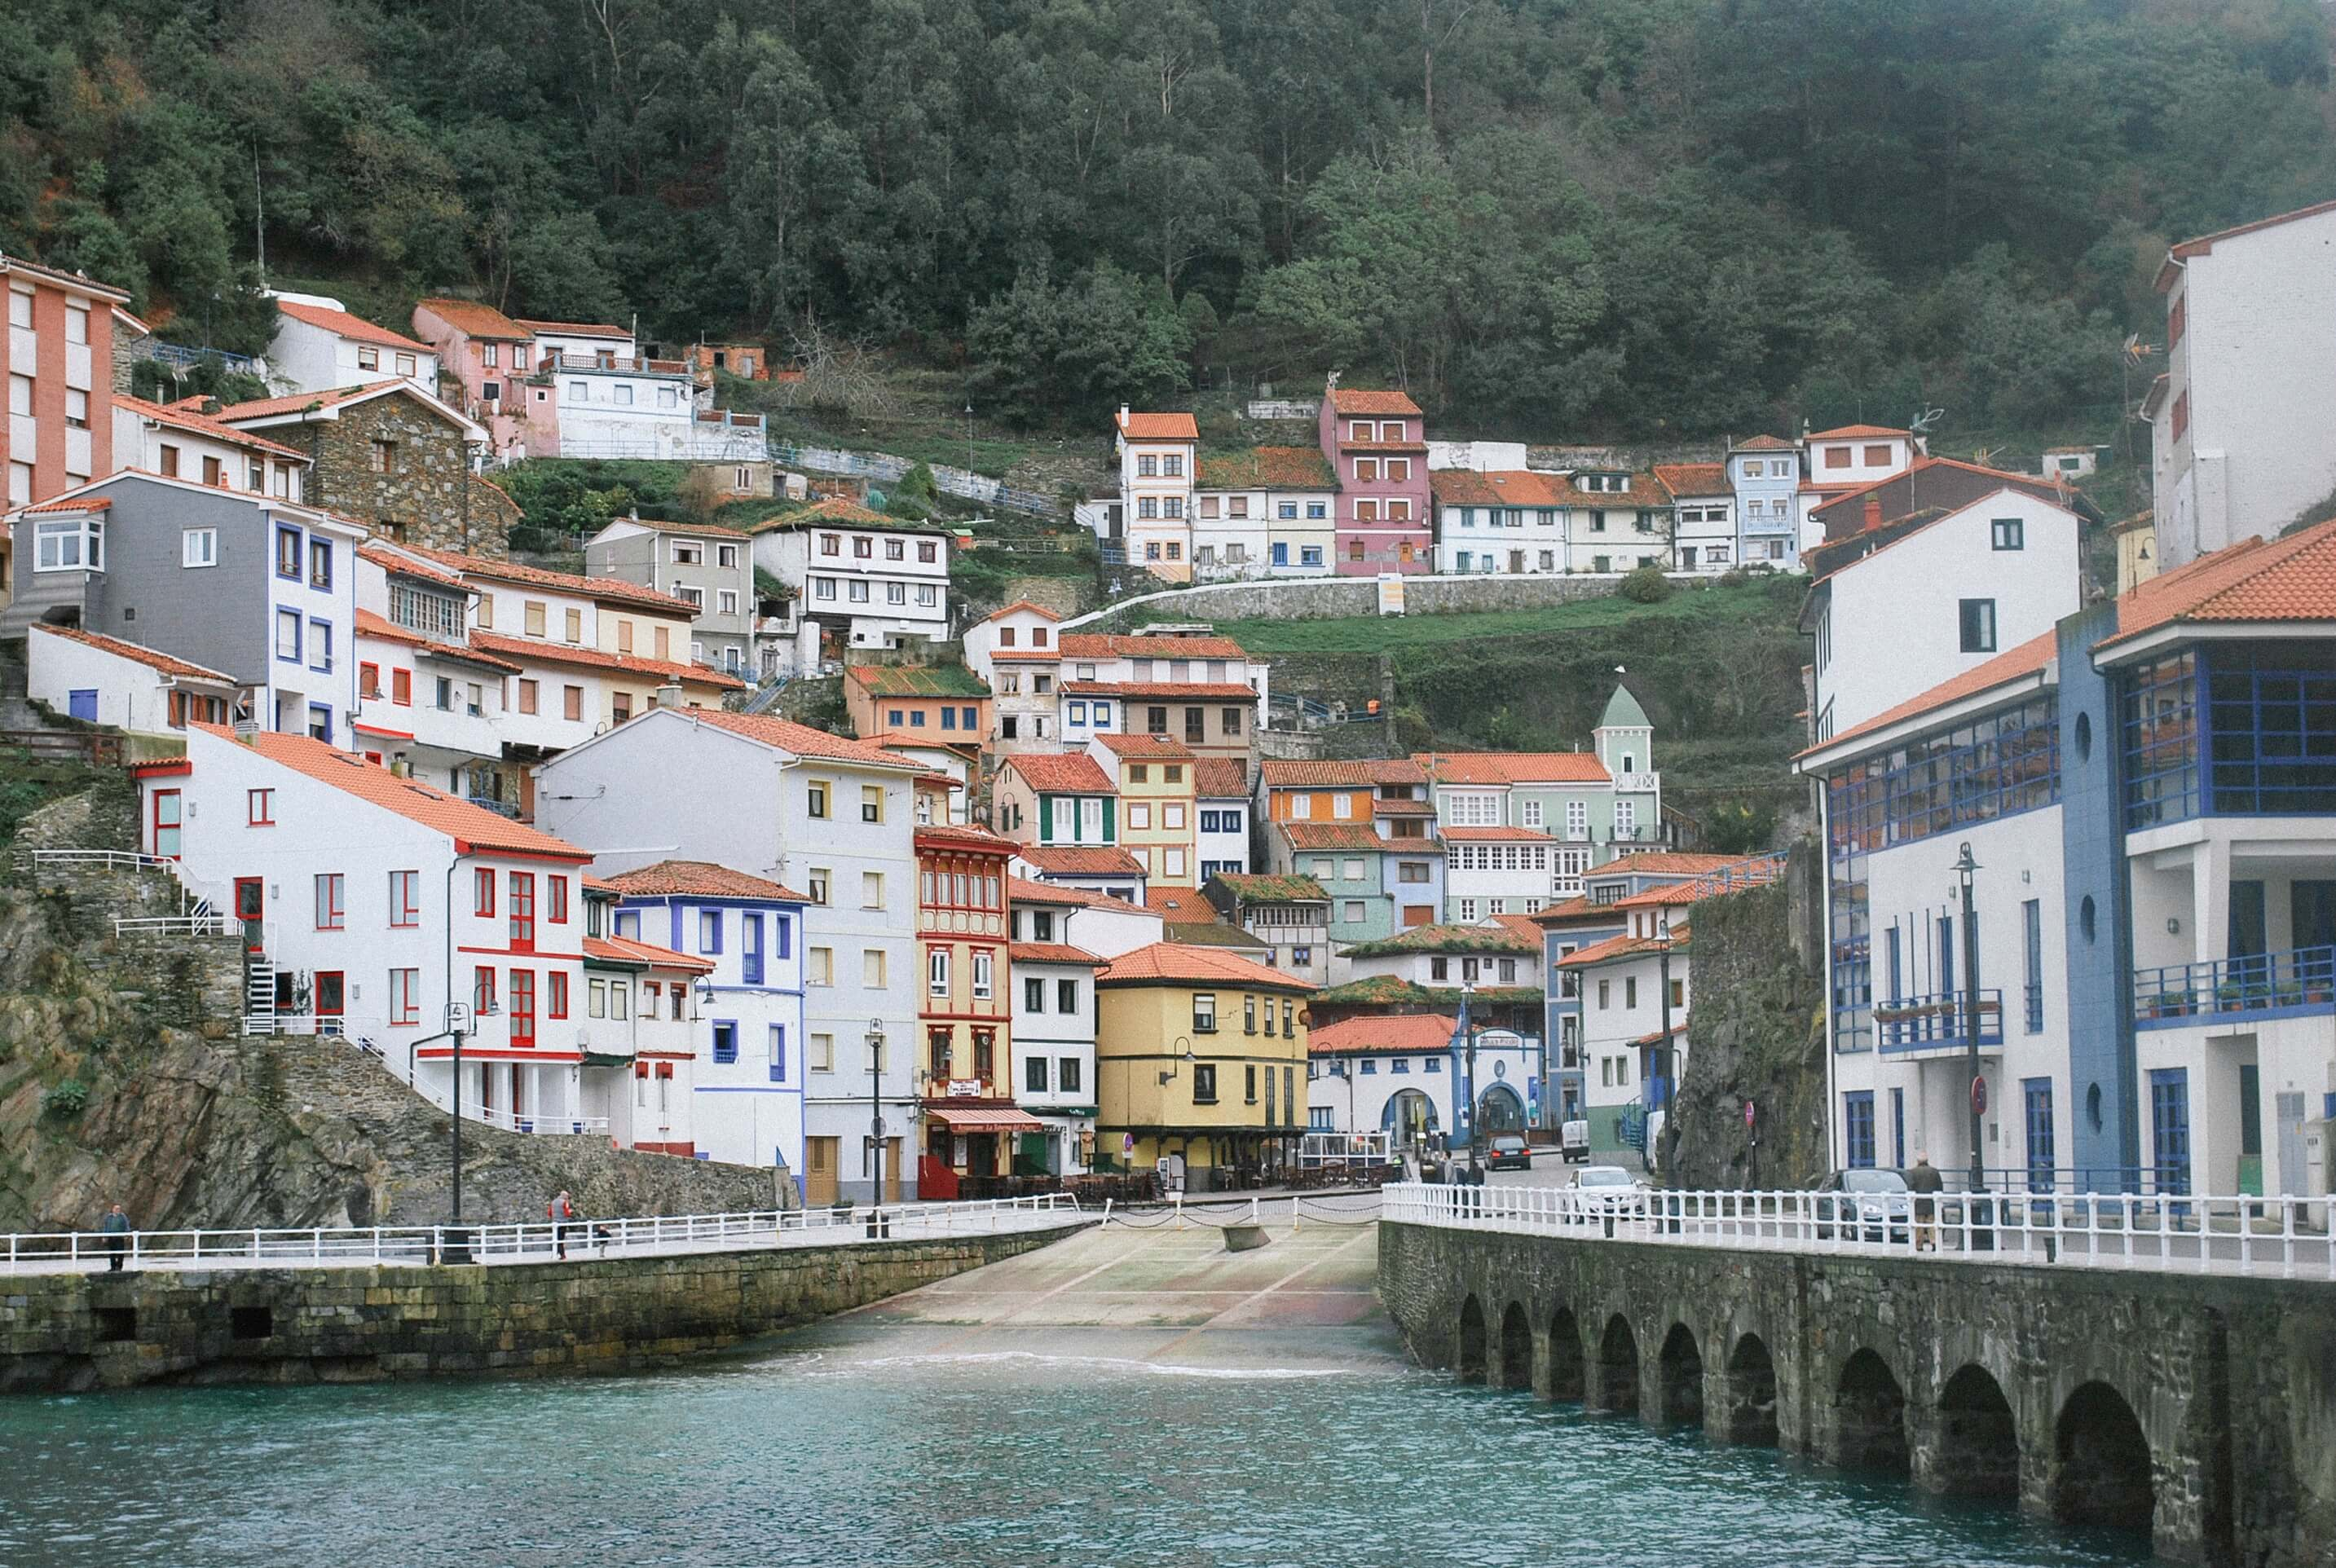 puertos marineros del occidente de asturias